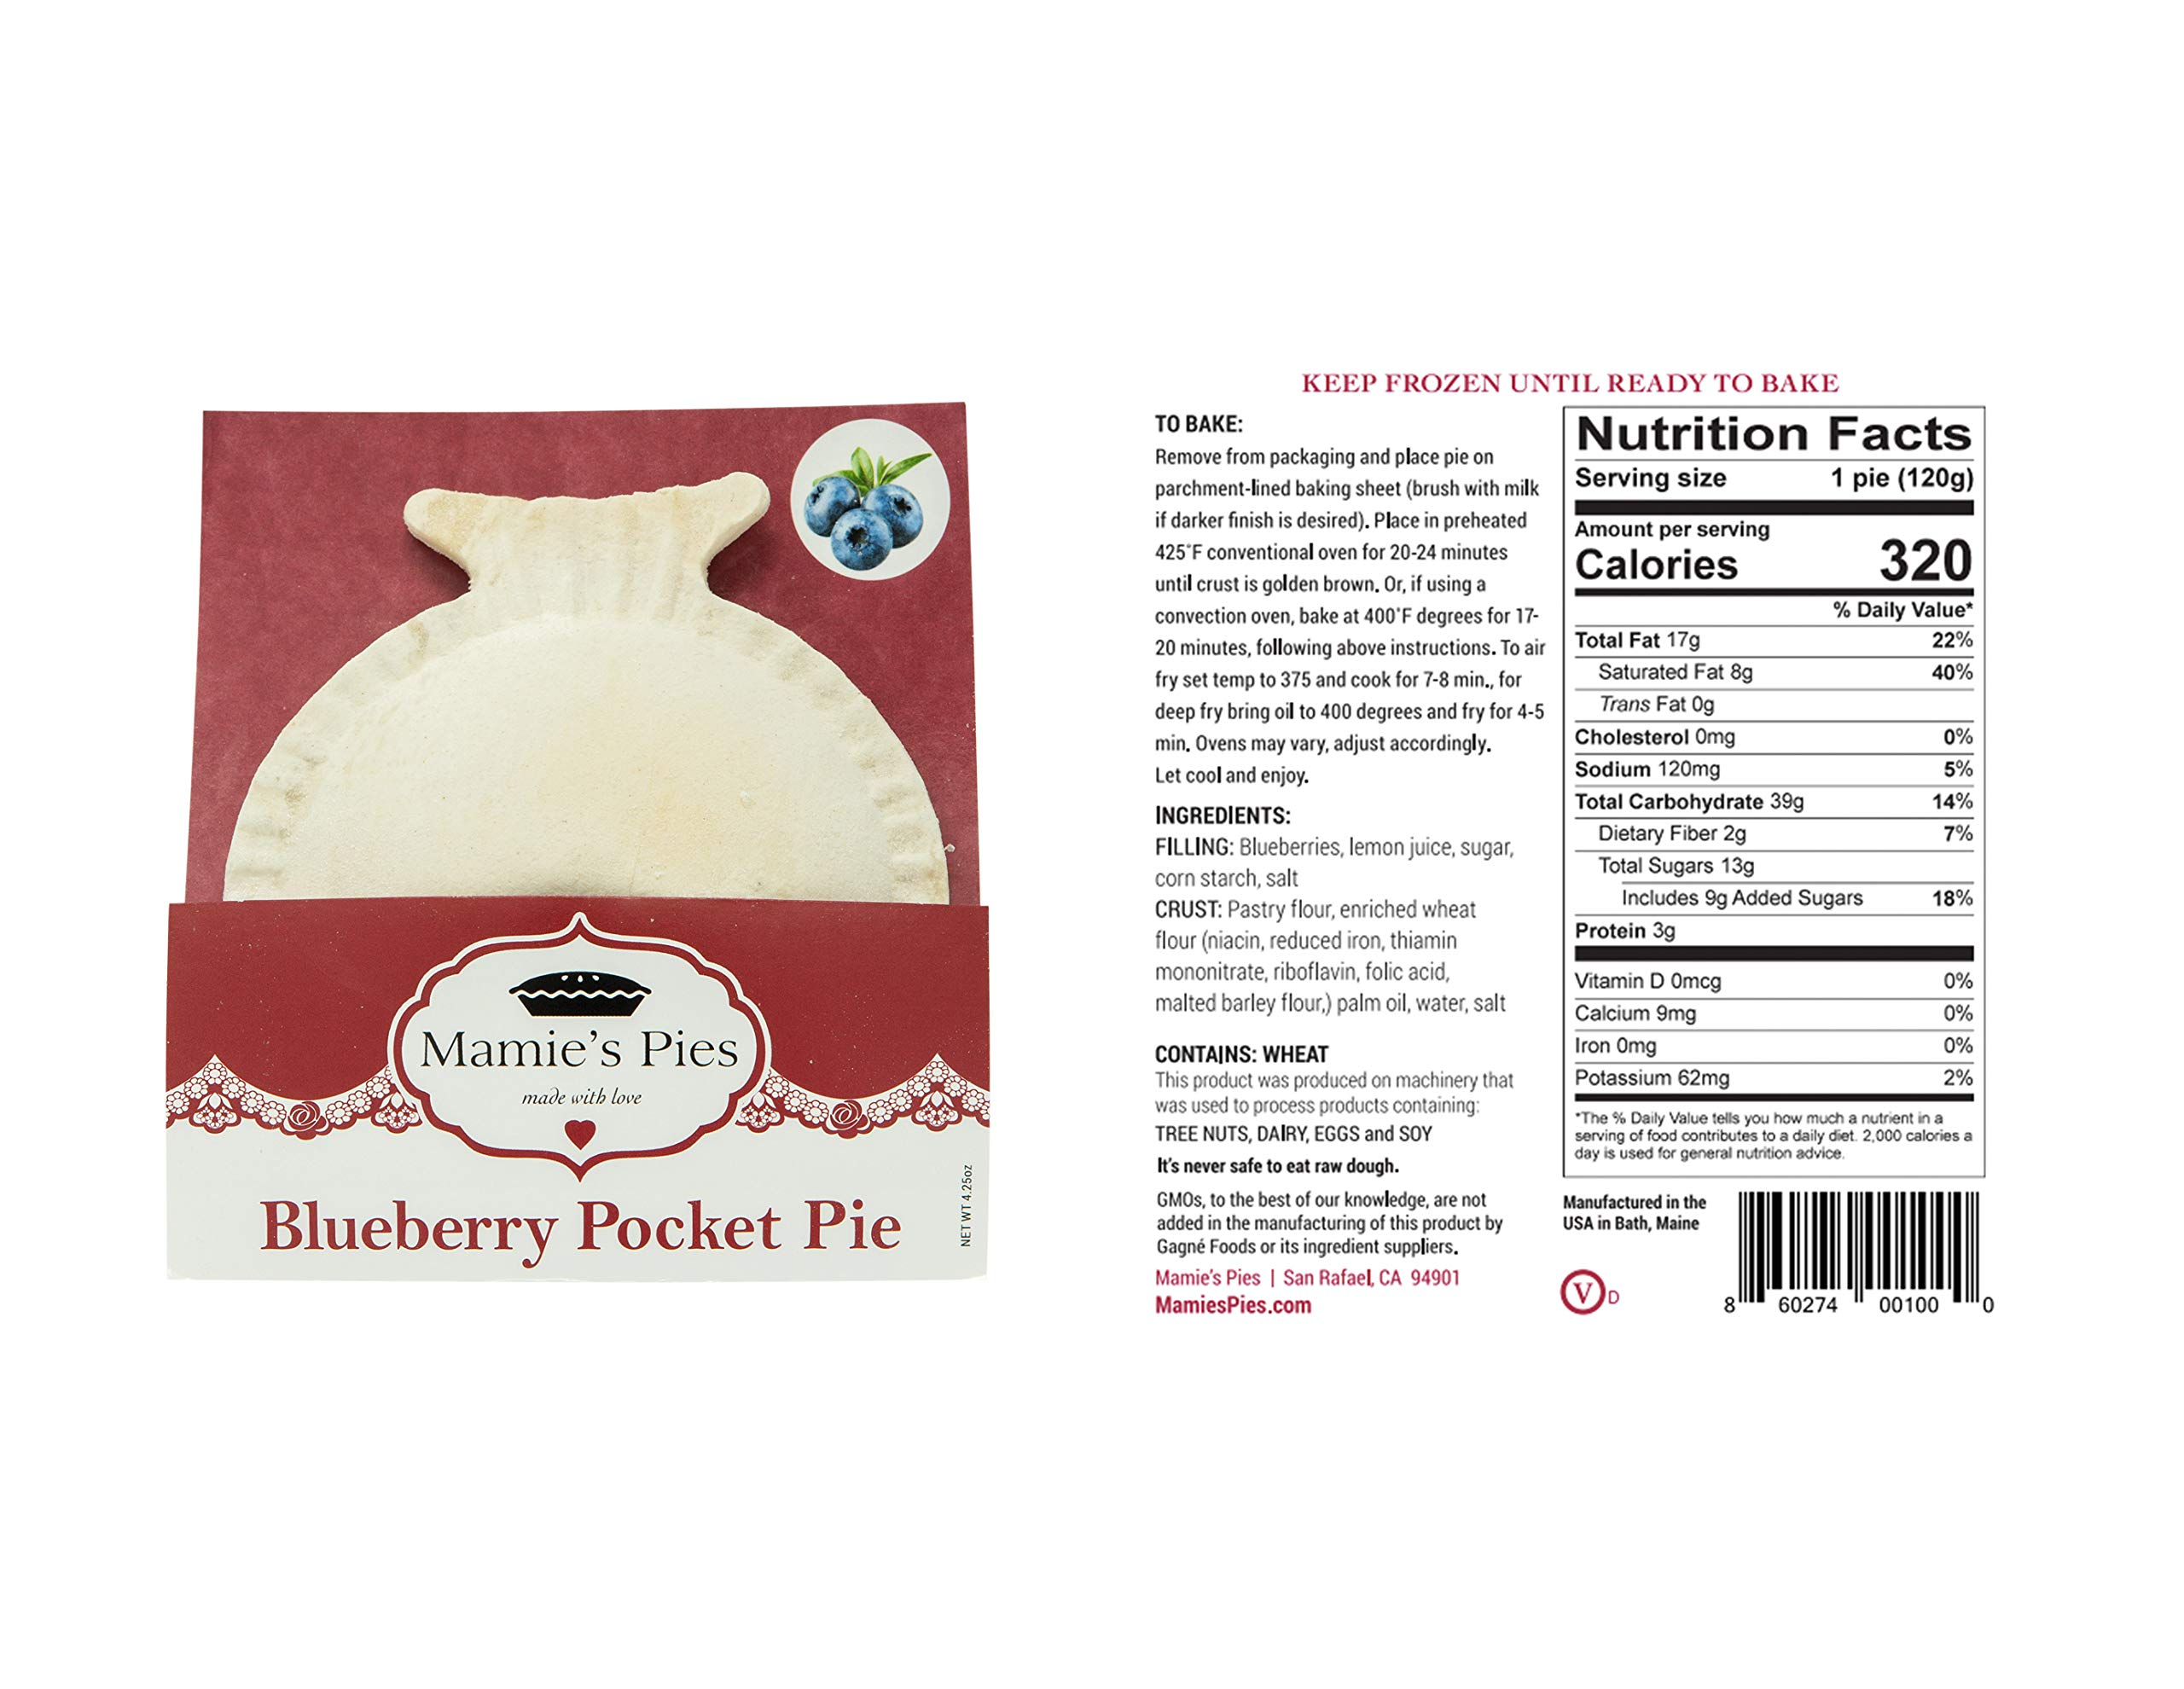 Mamie's 12 Pack Melt-in-Your-Mouth Single Serving Blueberry Pies, Individually Packaged 4.5oz Pocket Pies, Preservative Free, Shipped Frozen and Ready to Bake, Made in USA. by Mamie's Pies (Image #5)